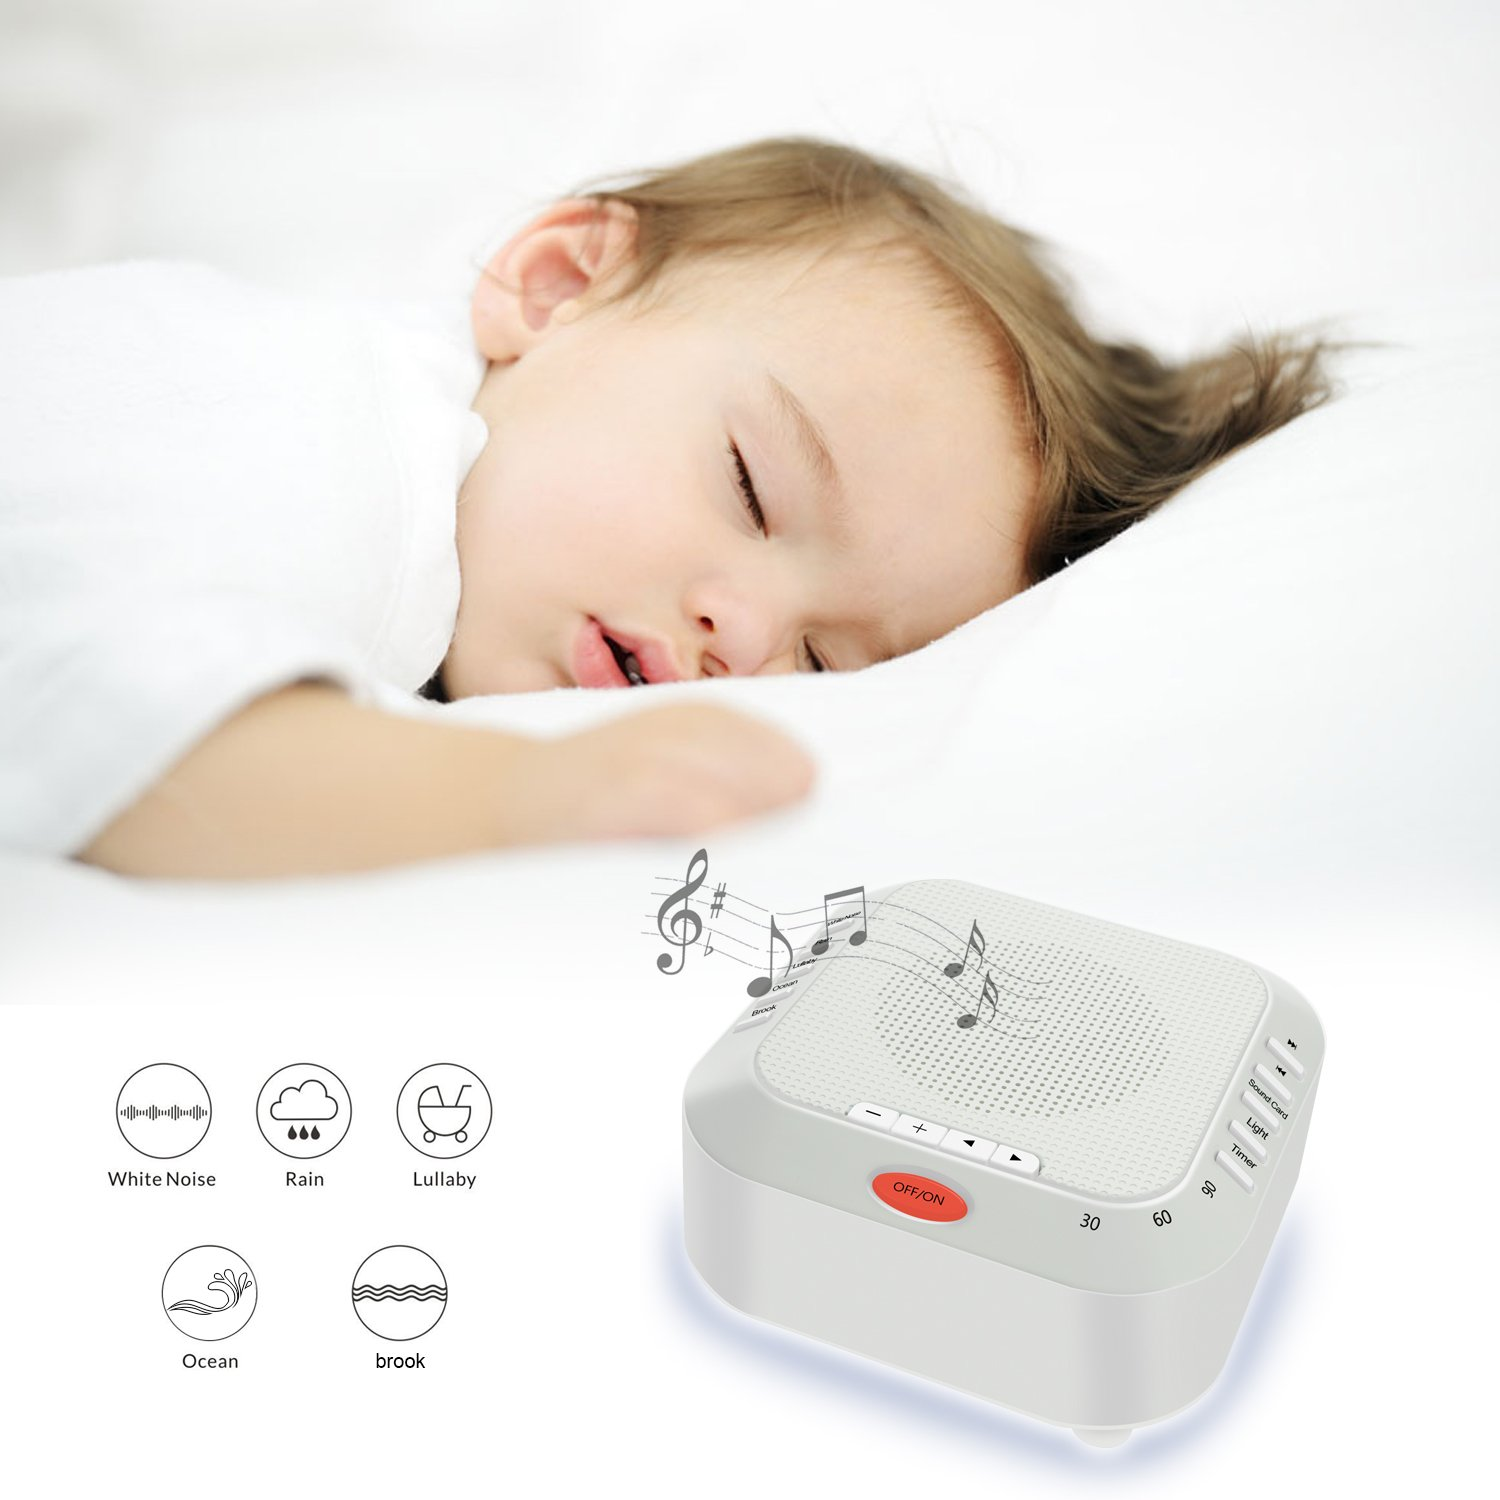 White Noise Machine, High Fidelity Natural Sounds for Baby and Adults, Rechargeable Sound Therapy Machine with Nightlight, TF Card and Adjustable Volume for Travel, Yoga, Home and Office